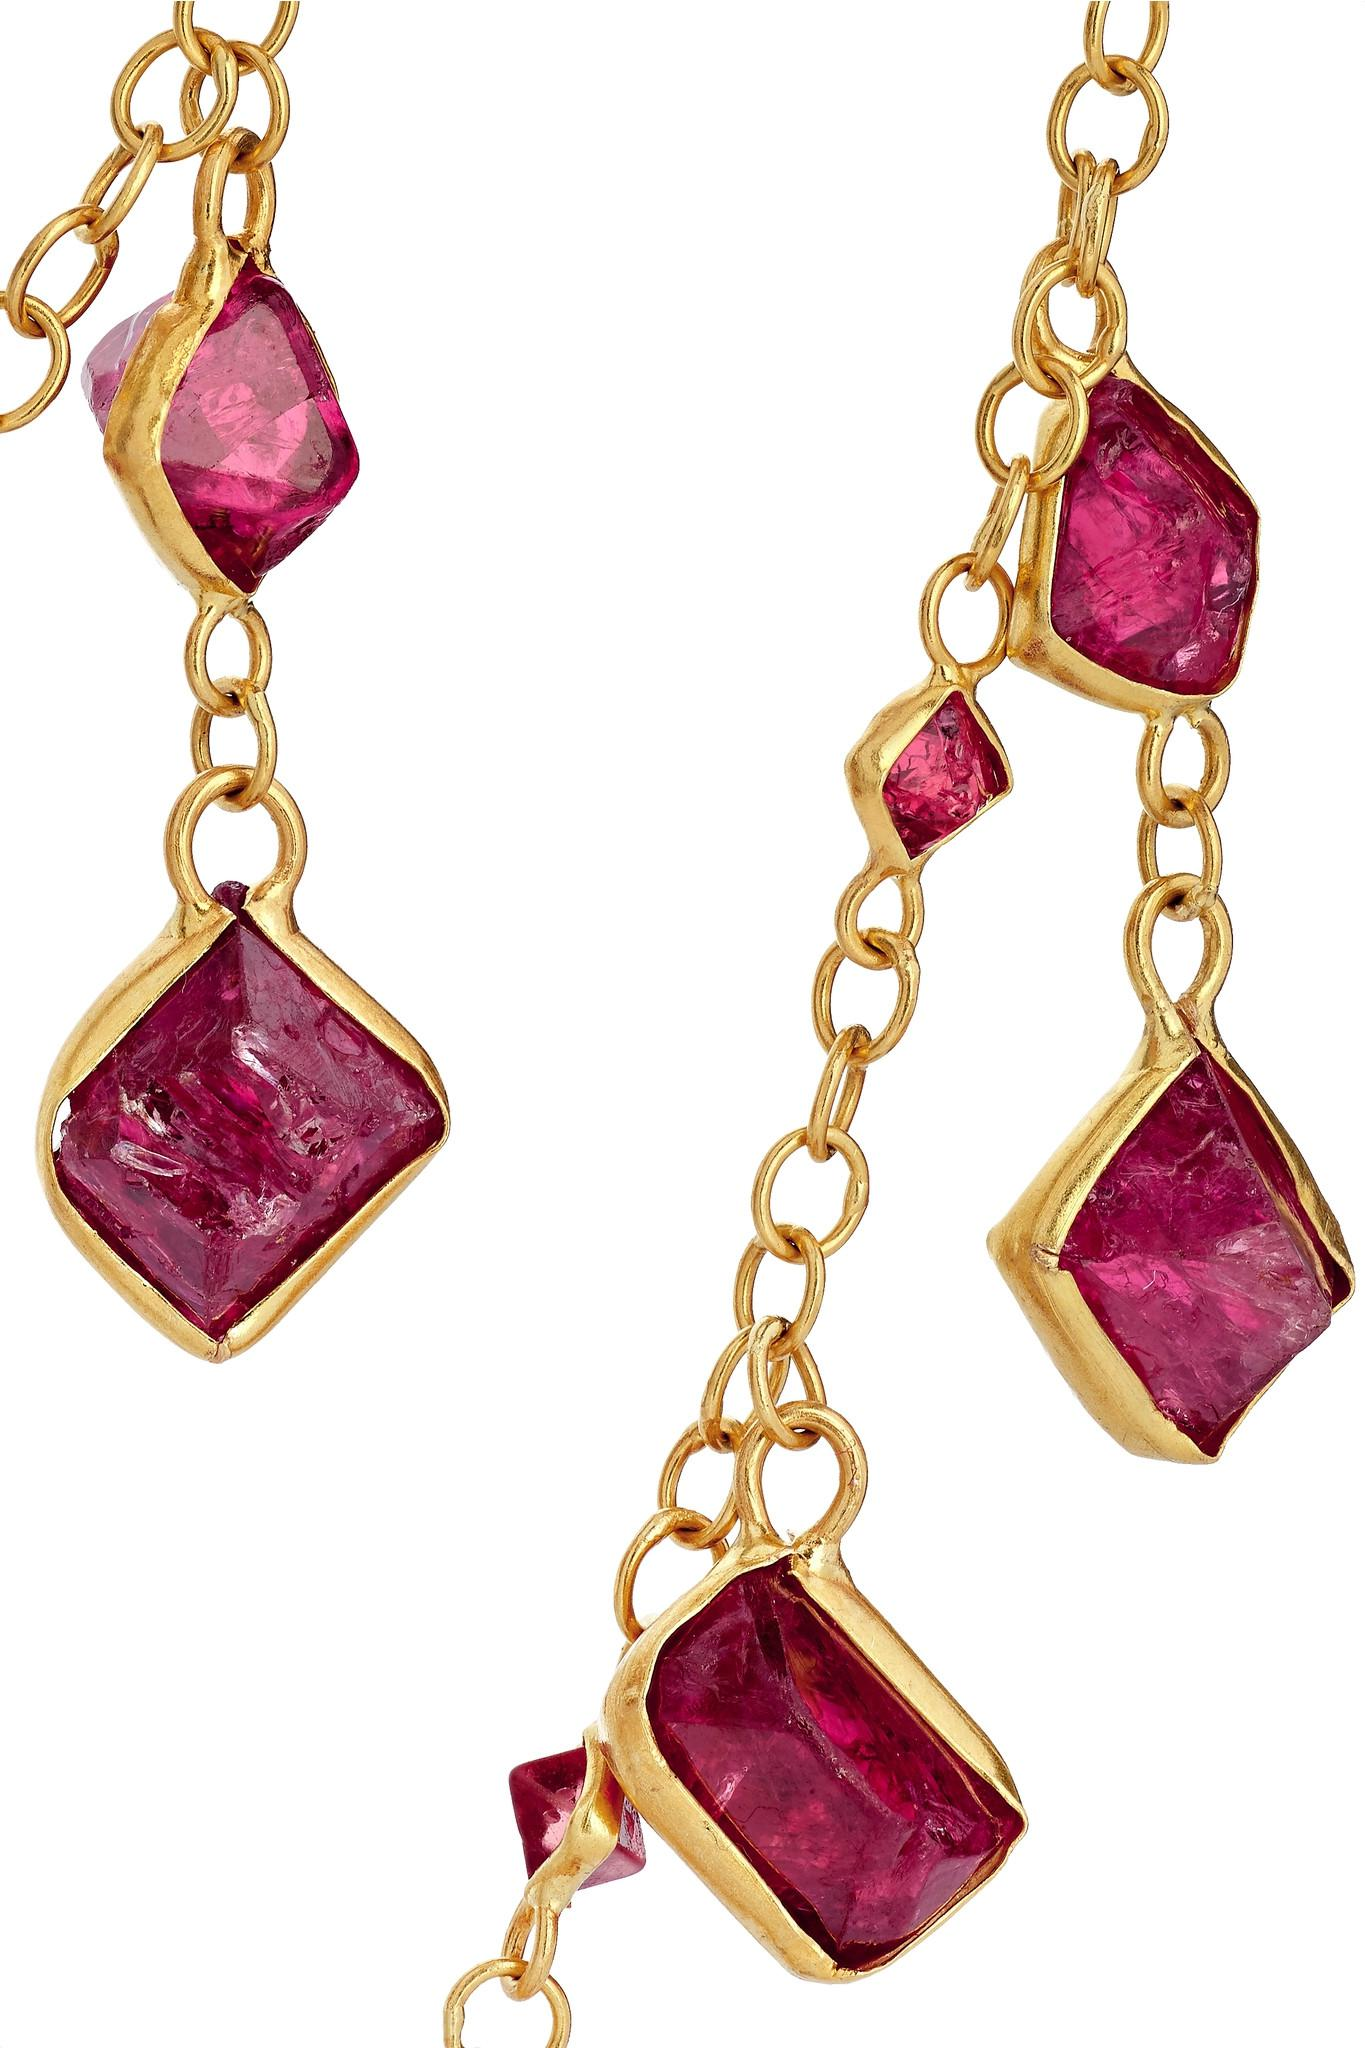 Pippa Small 18-karat Gold Spinel Necklace in Metallic